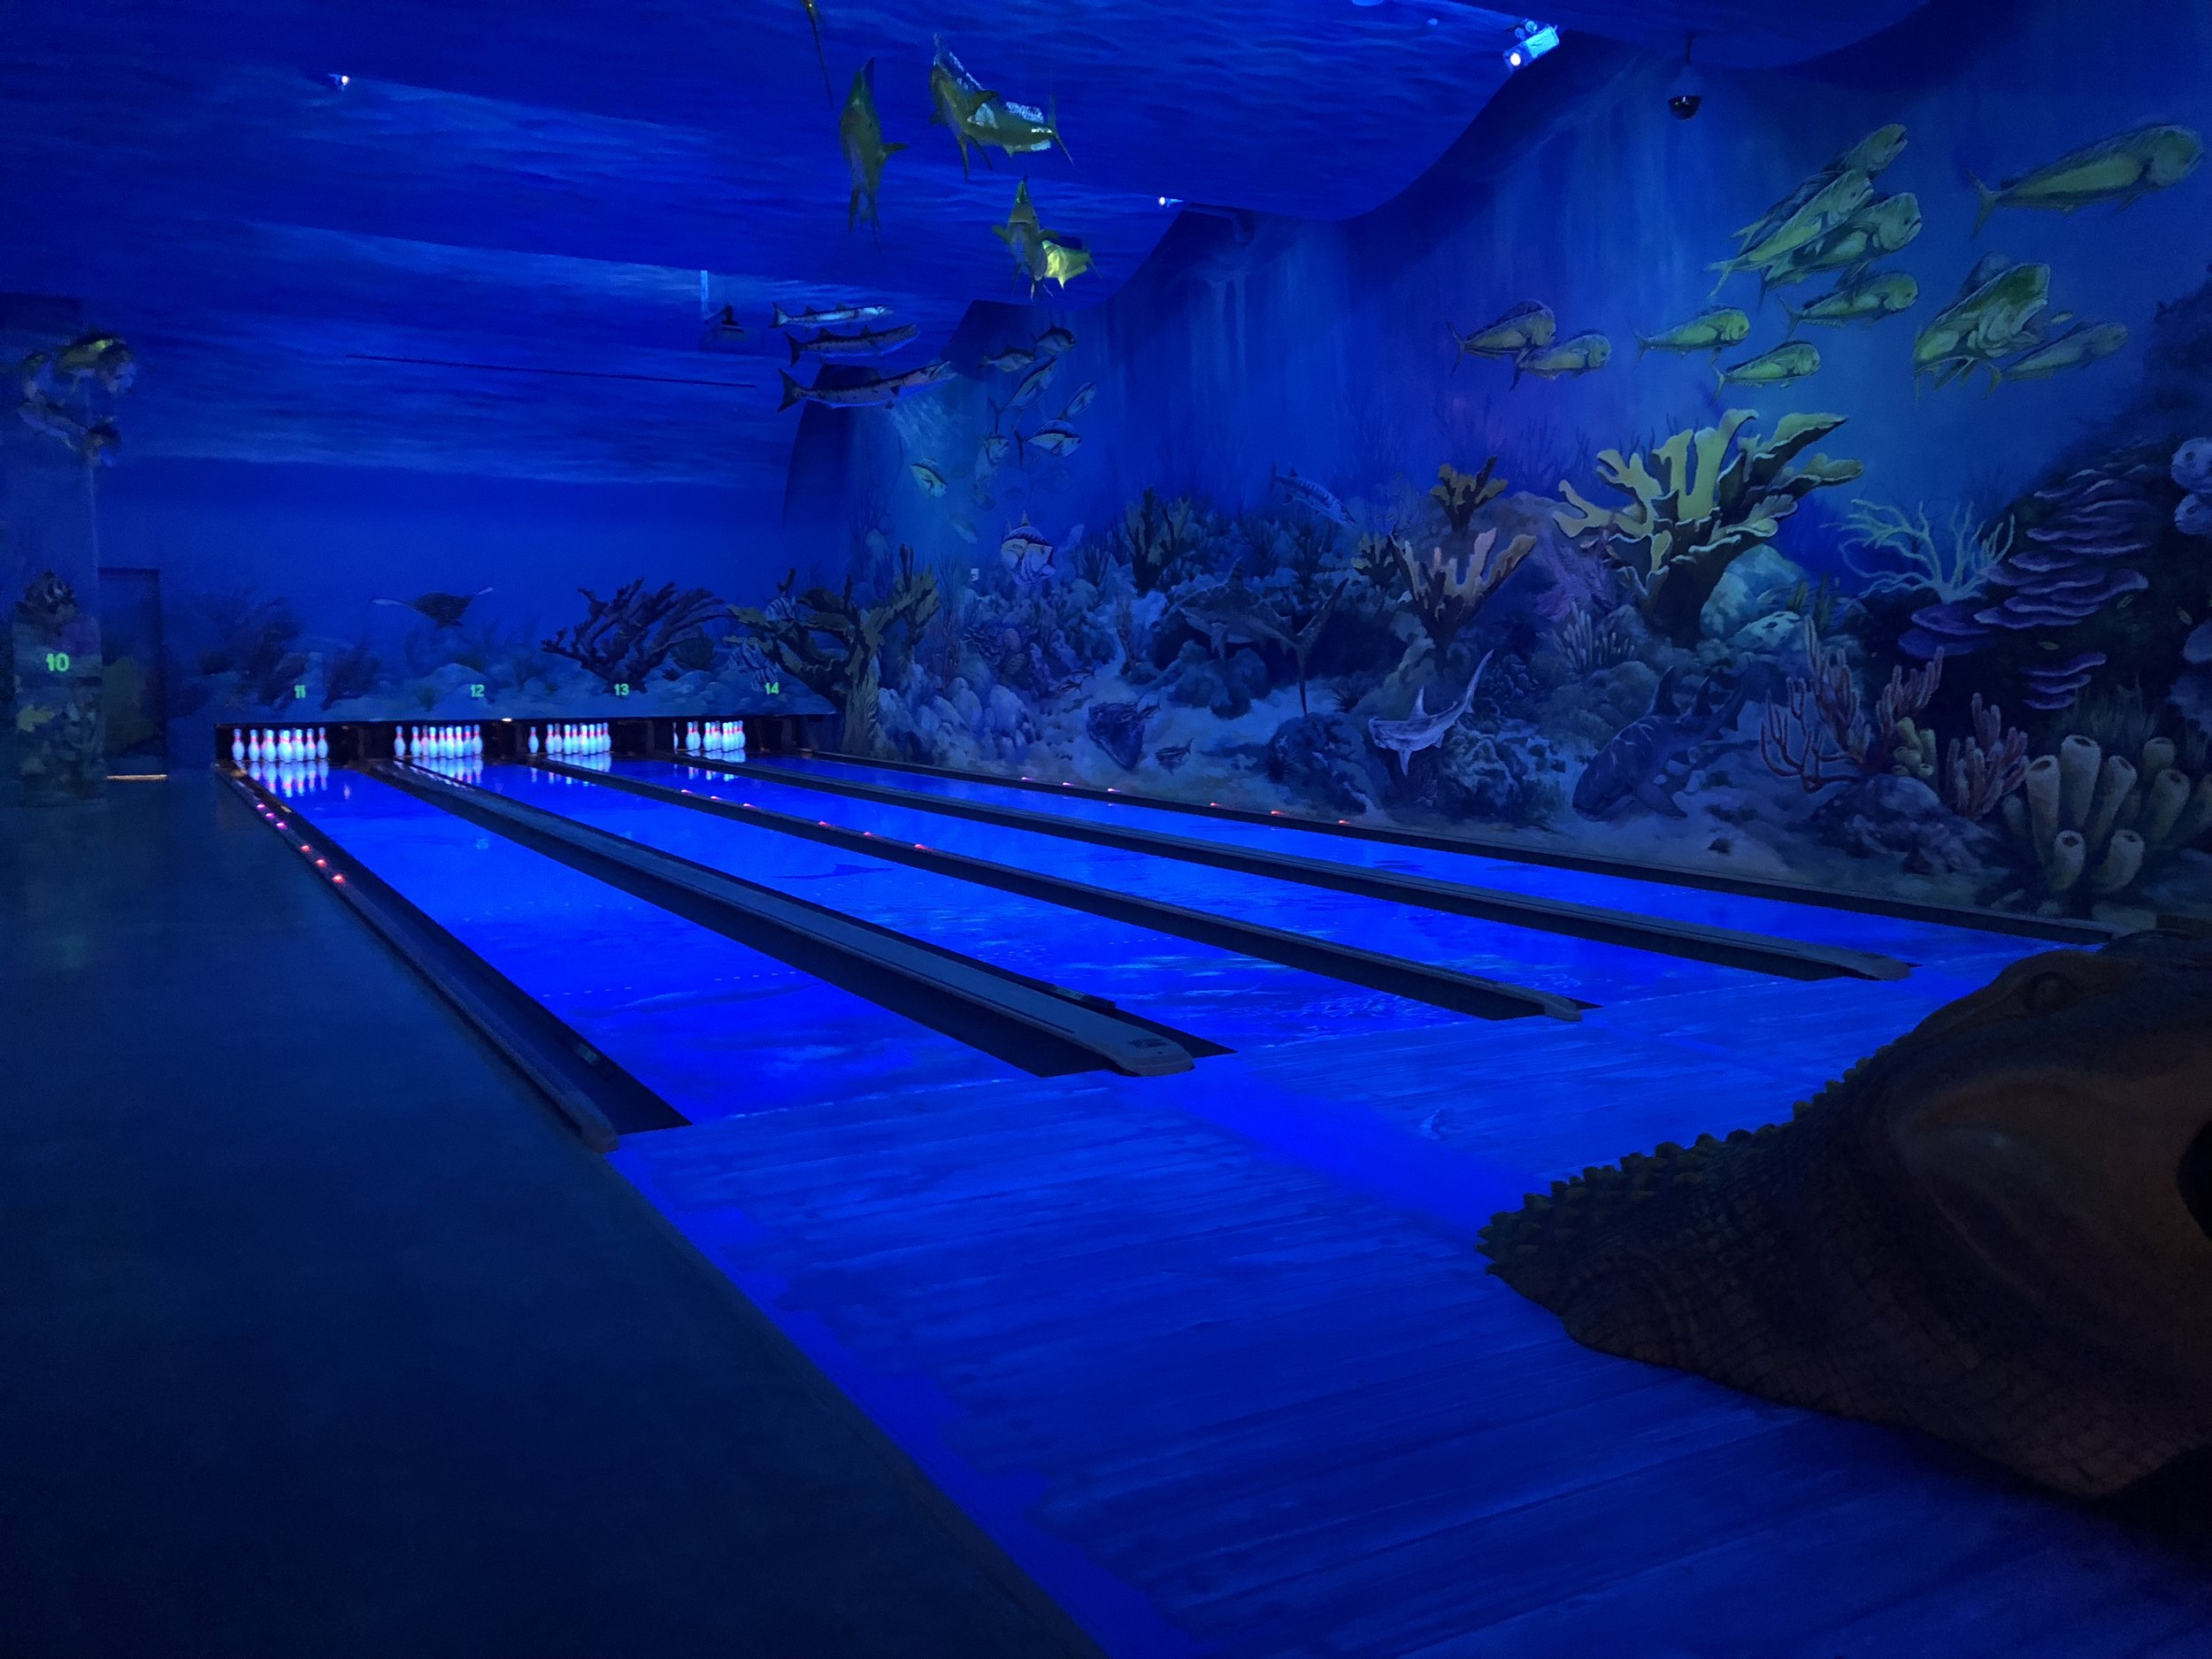 The bowling alley was underwater themed and looked really cool